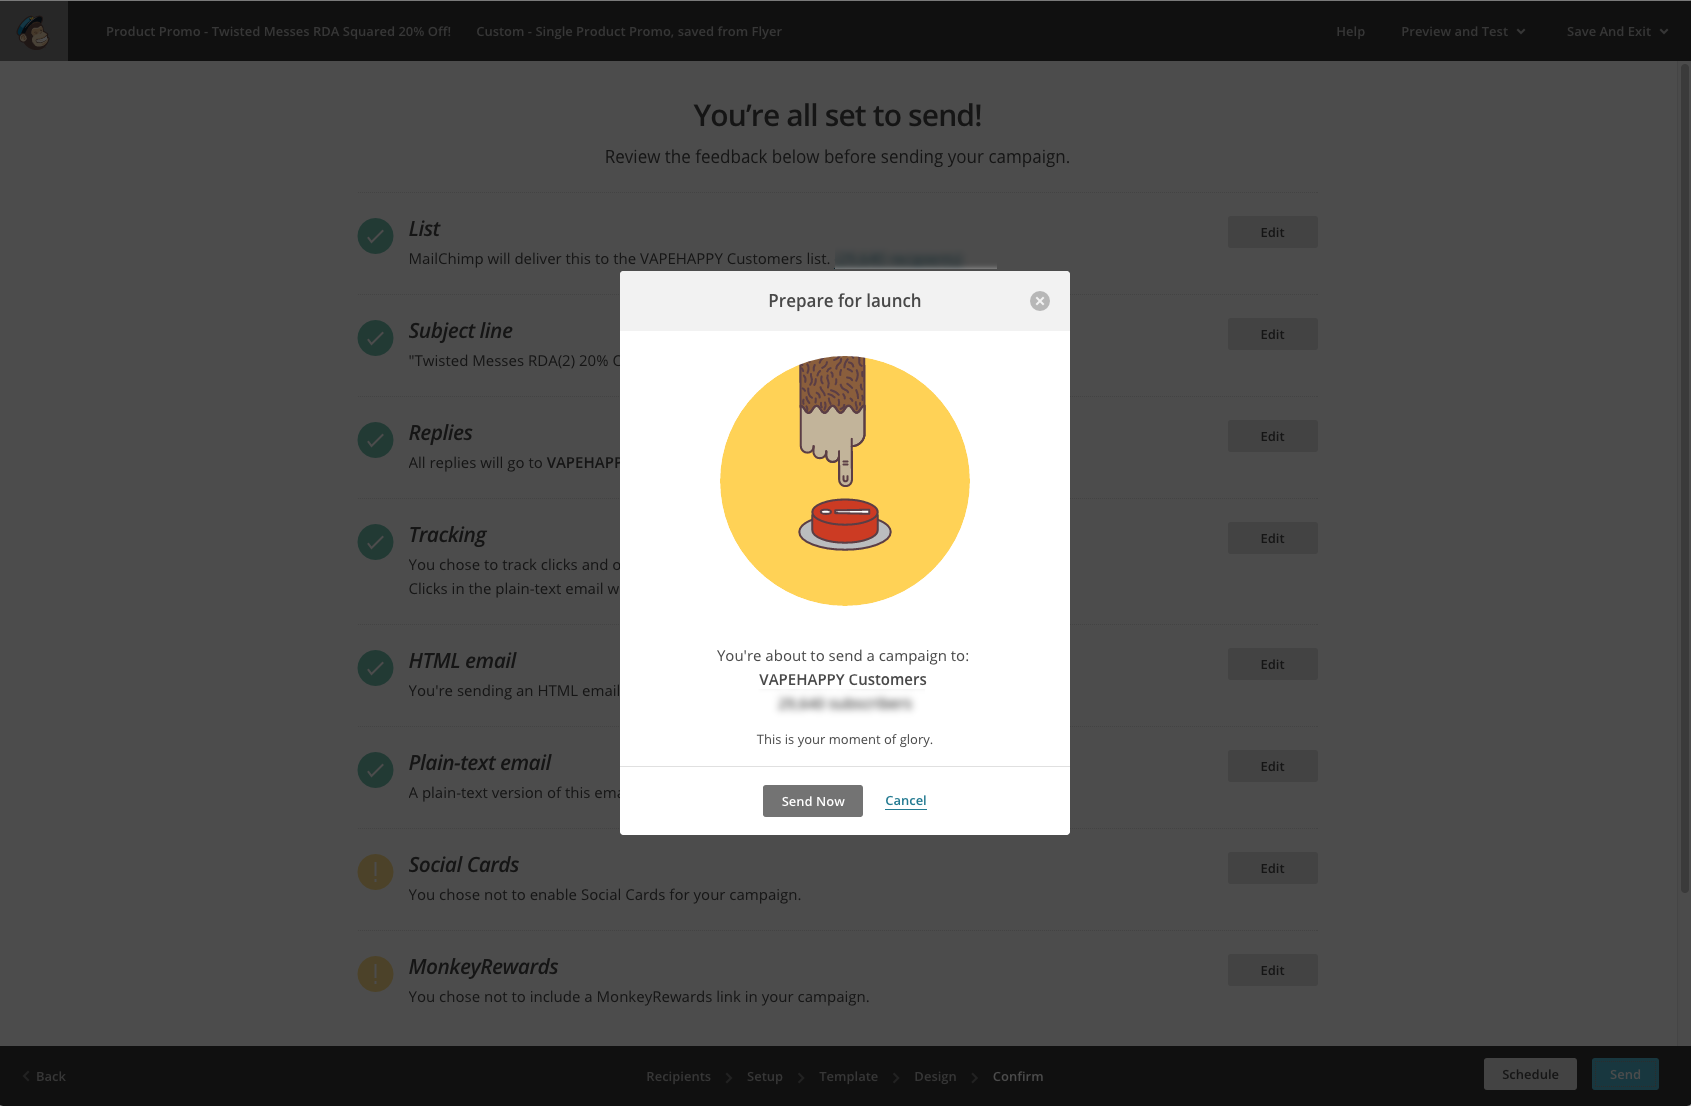 Mailchimp has mastered useful but delightful micro-interactions